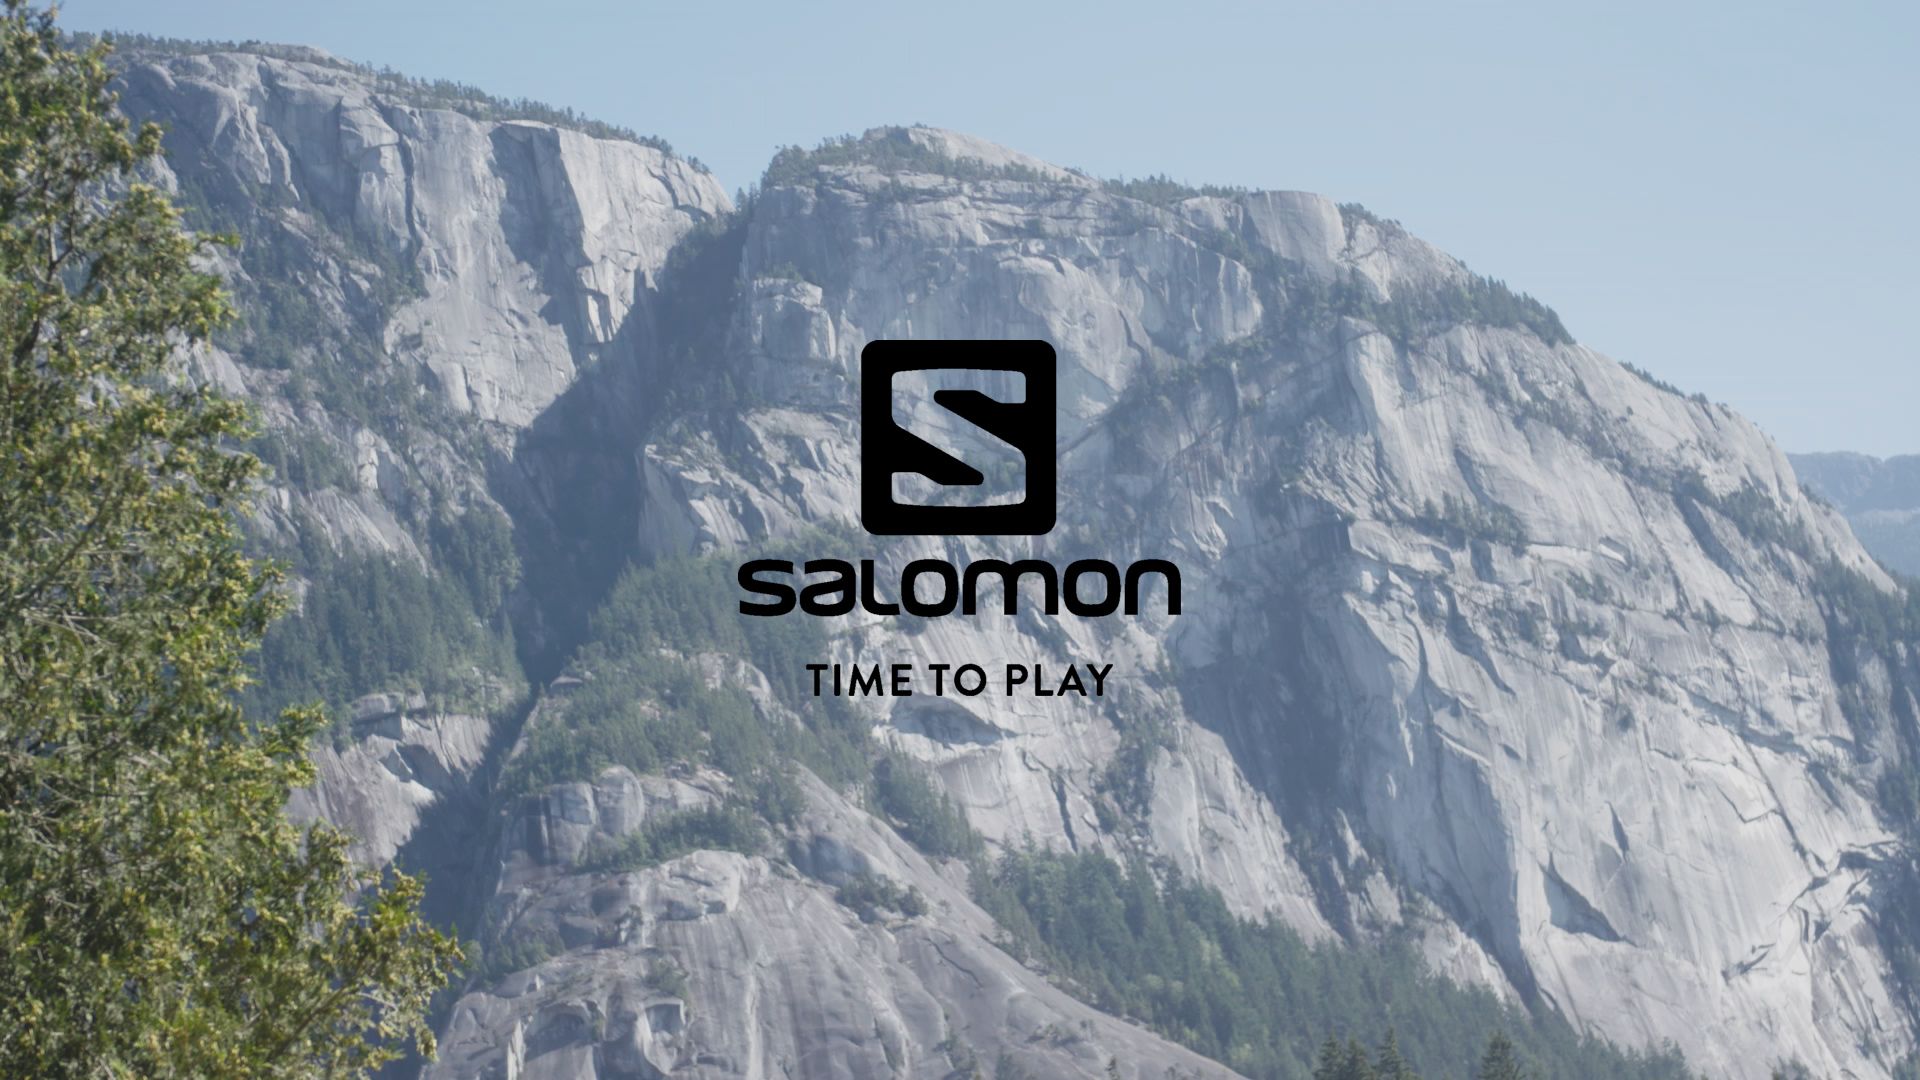 Squamish50 #TimetoPlay for Salomon